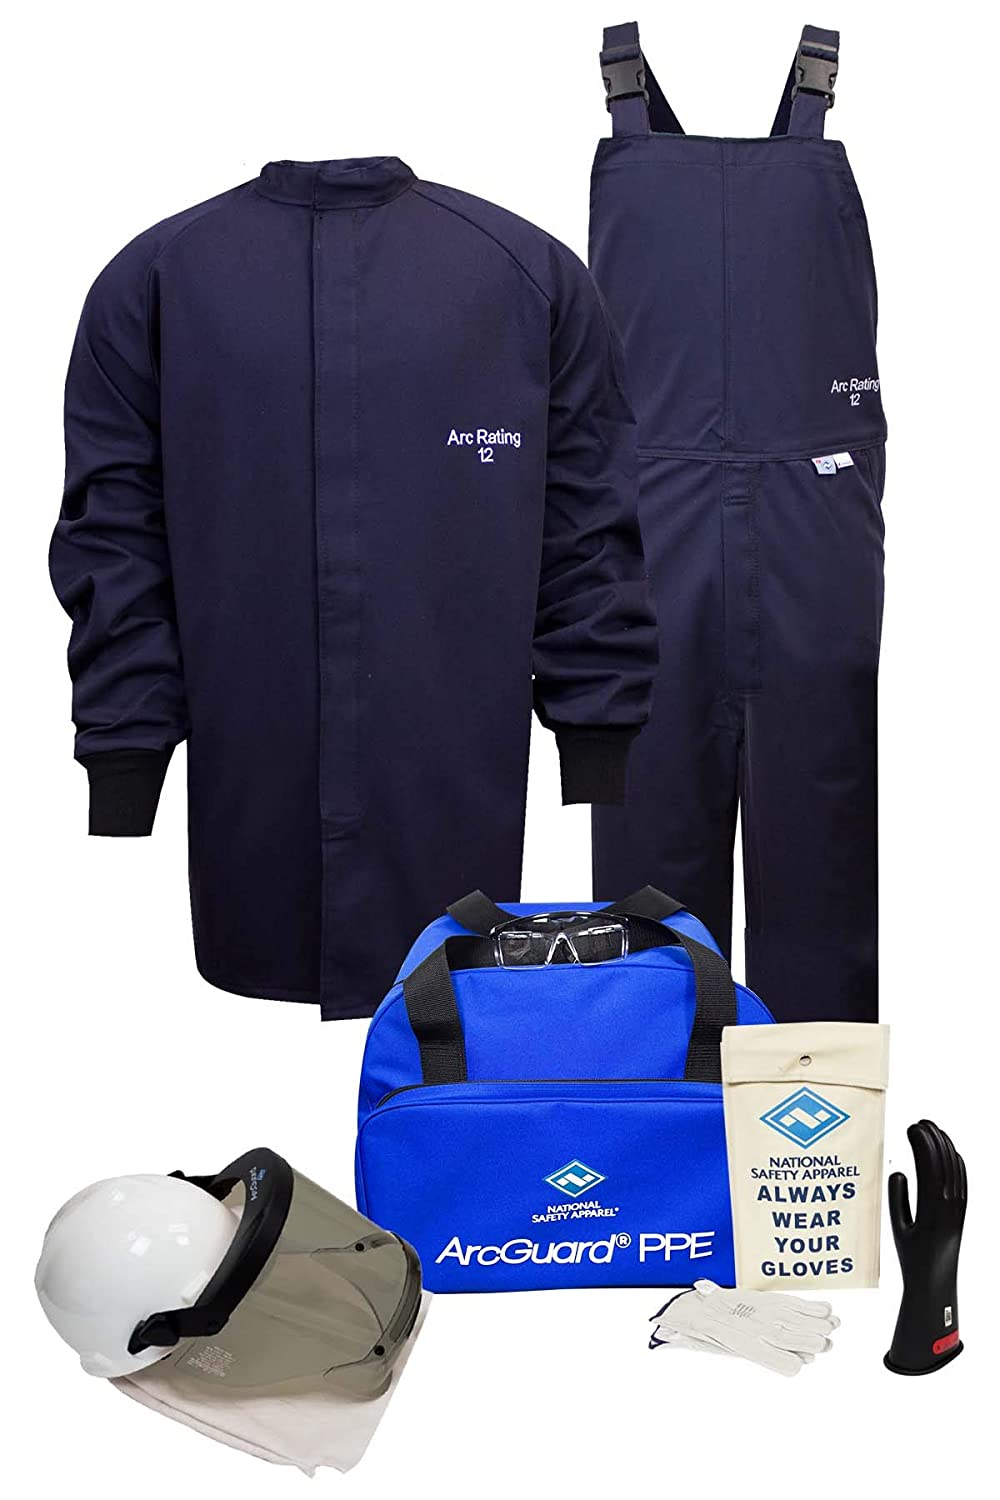 National Safety Apparel KIT2SC11XL11 Limited price sale ArcGuard security Flas Arc Ultrasoft